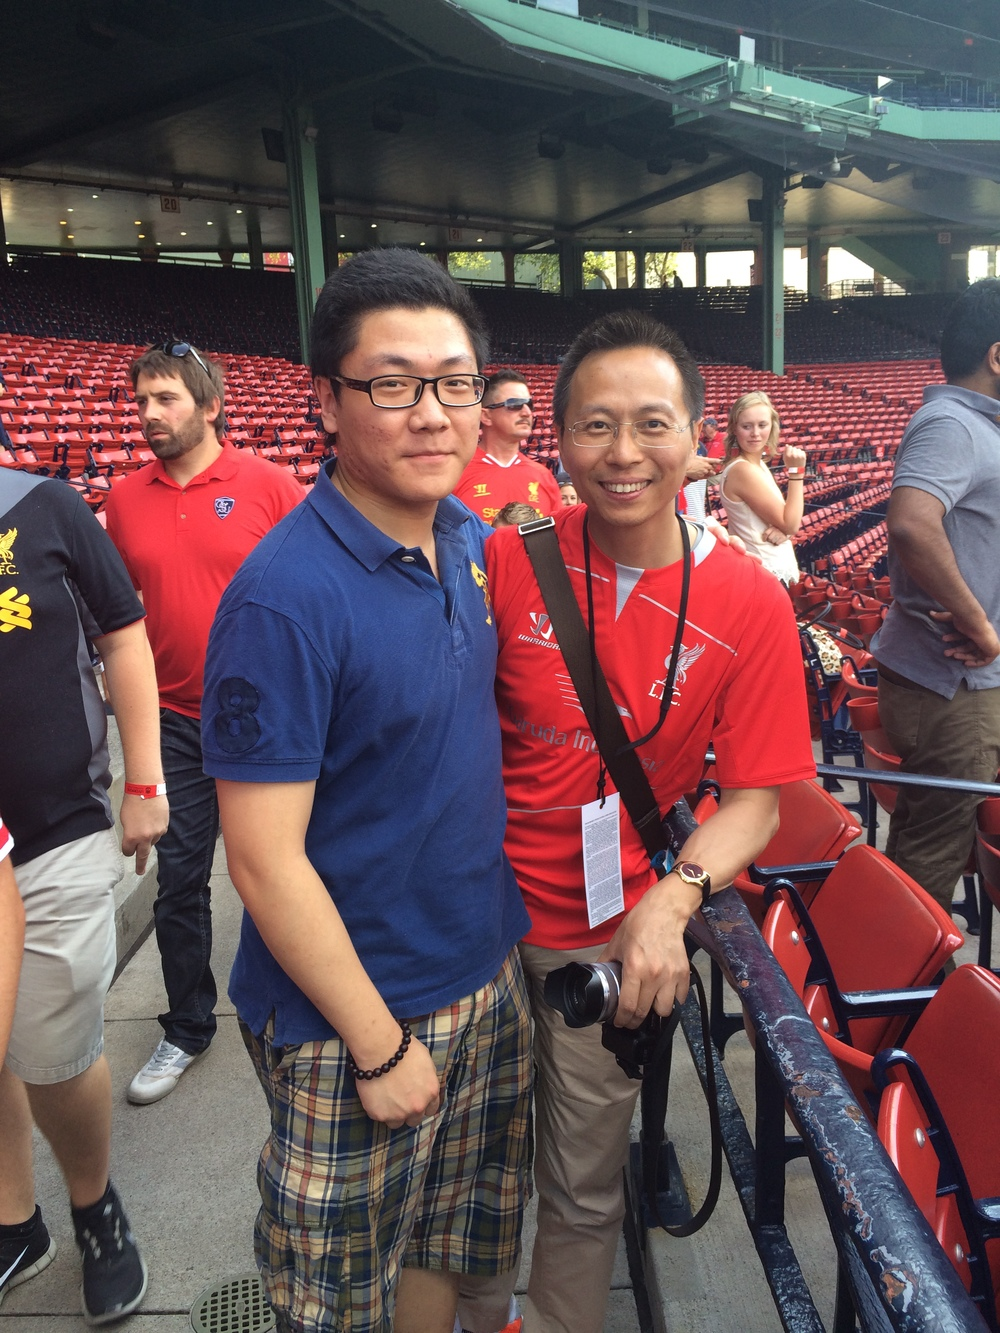 Me with Jun Zhan, a famous mandarin soccer commentator in ESPN. We were at Fenway Park when Liverpool visited Boston.